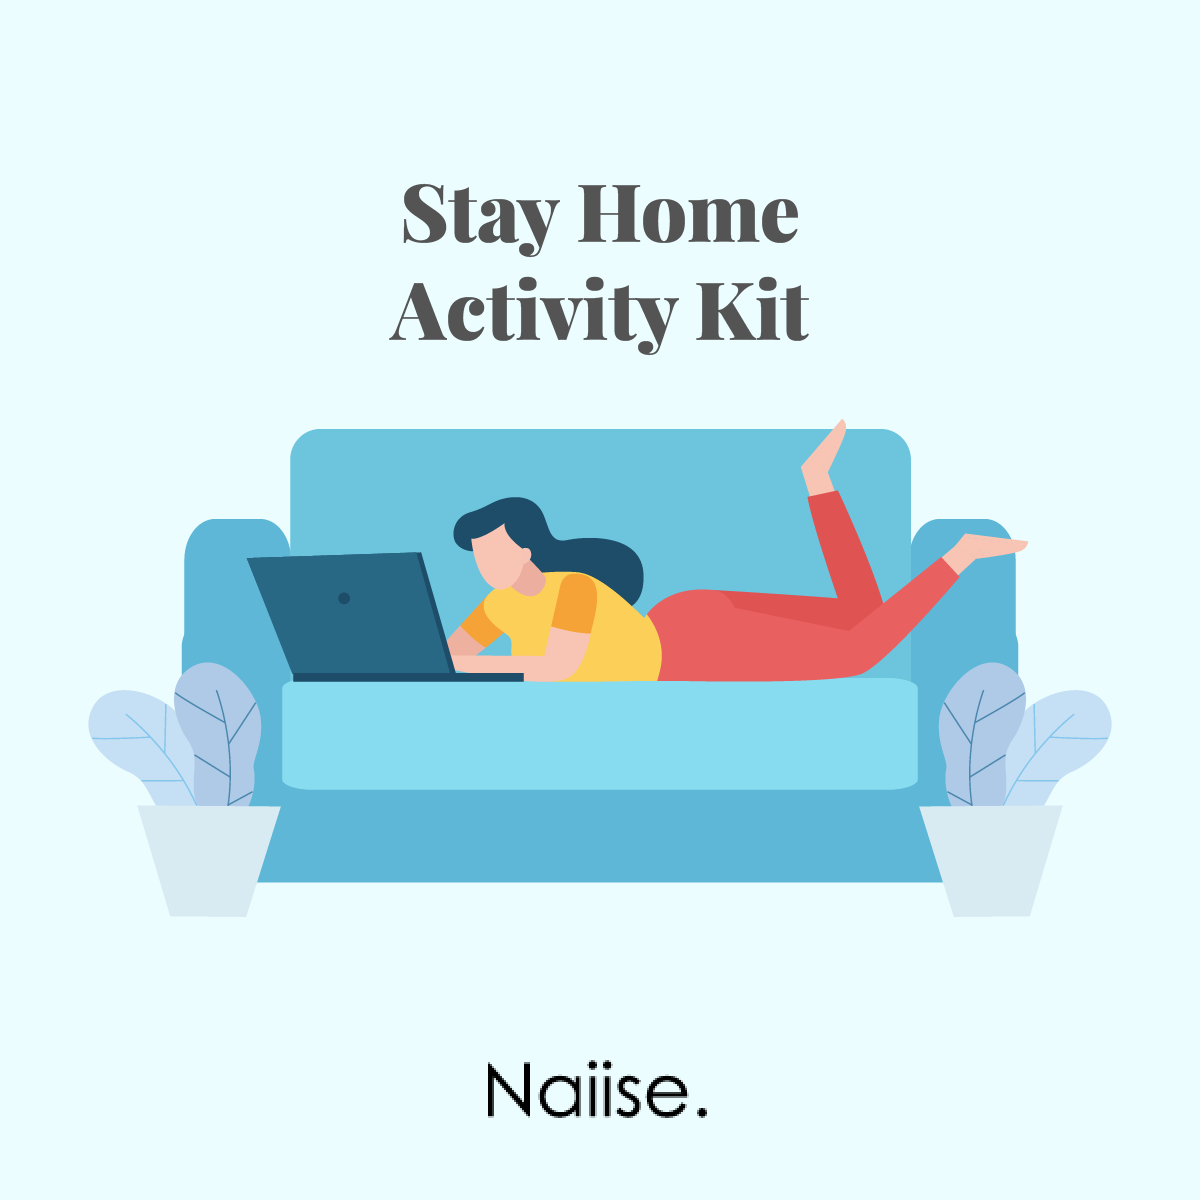 Stay Home Activity Kit